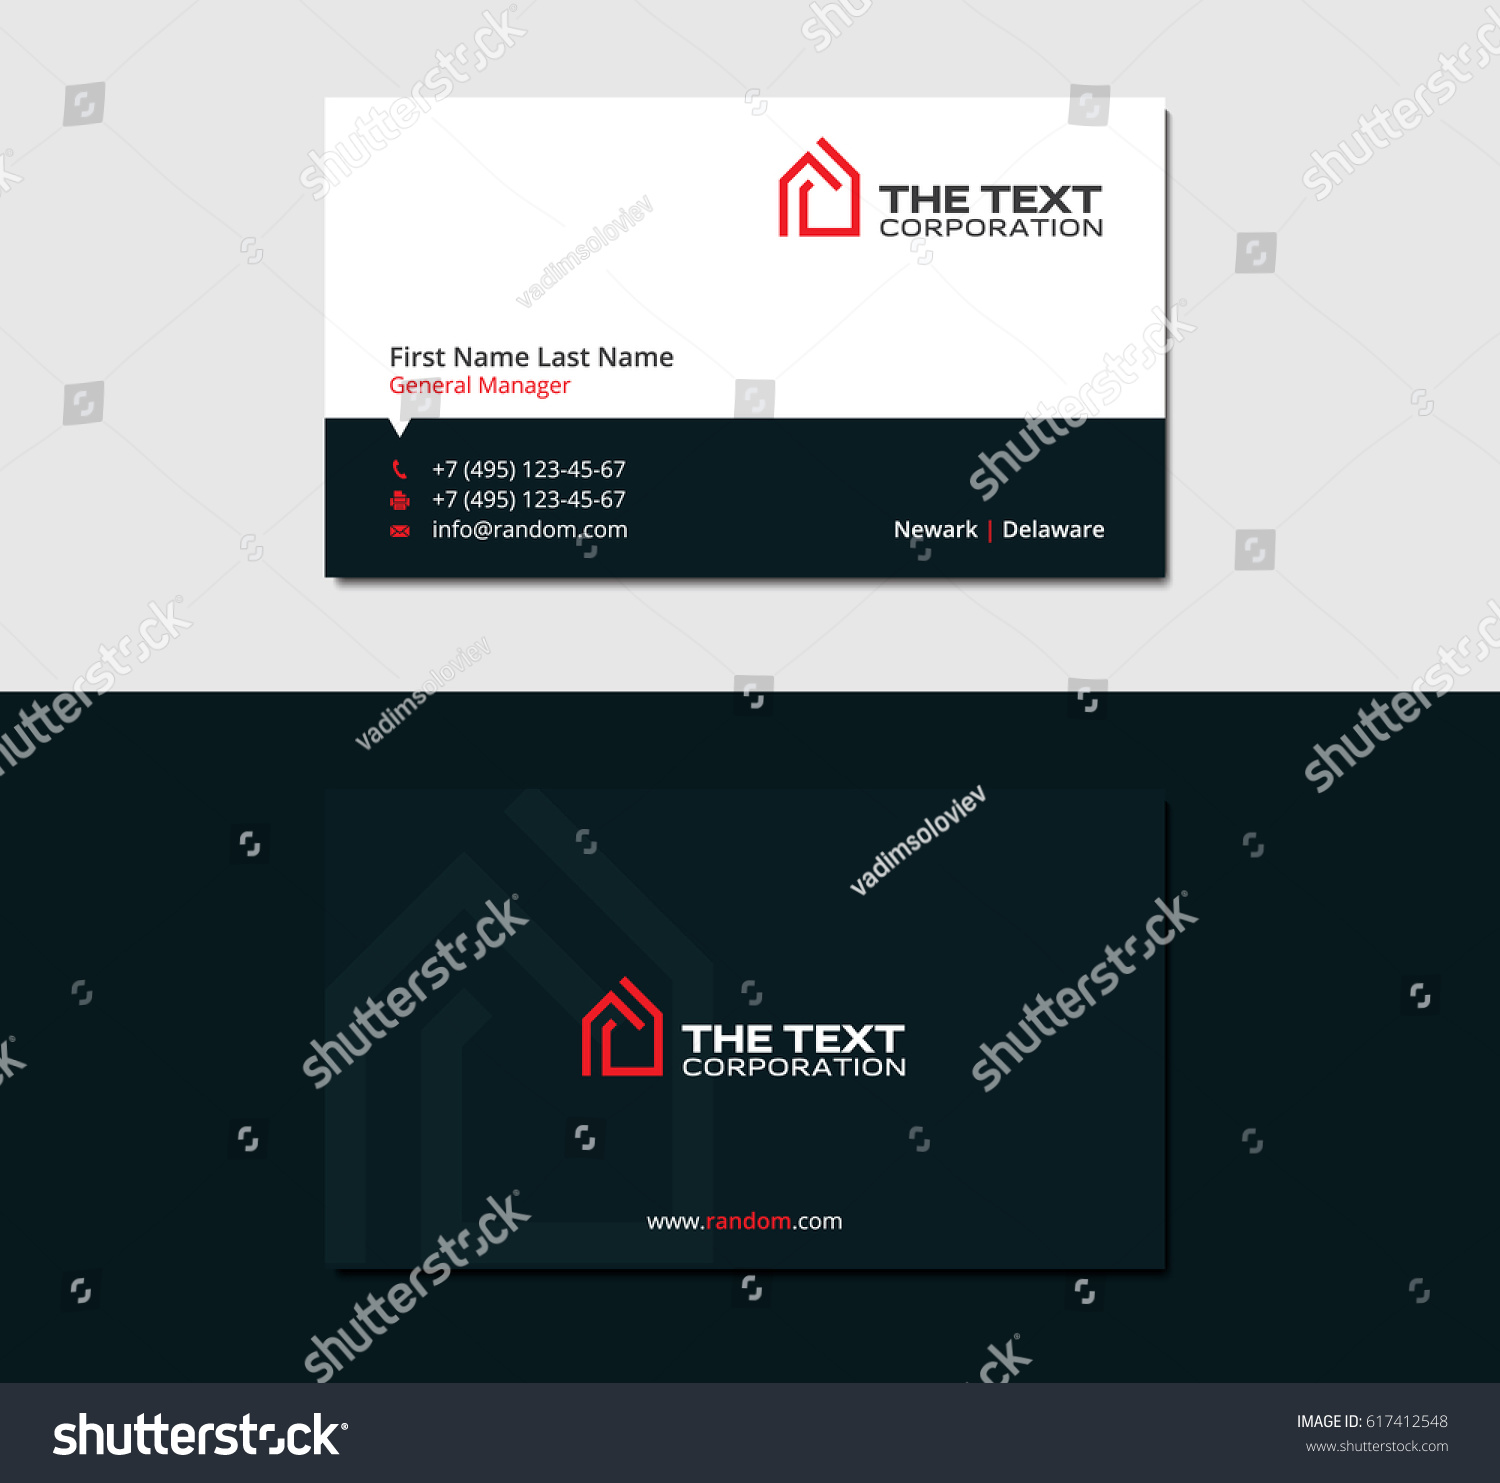 Dark business card real estate agency stock vector 617412548 dark business card for real estate agency with red logo of house magicingreecefo Image collections